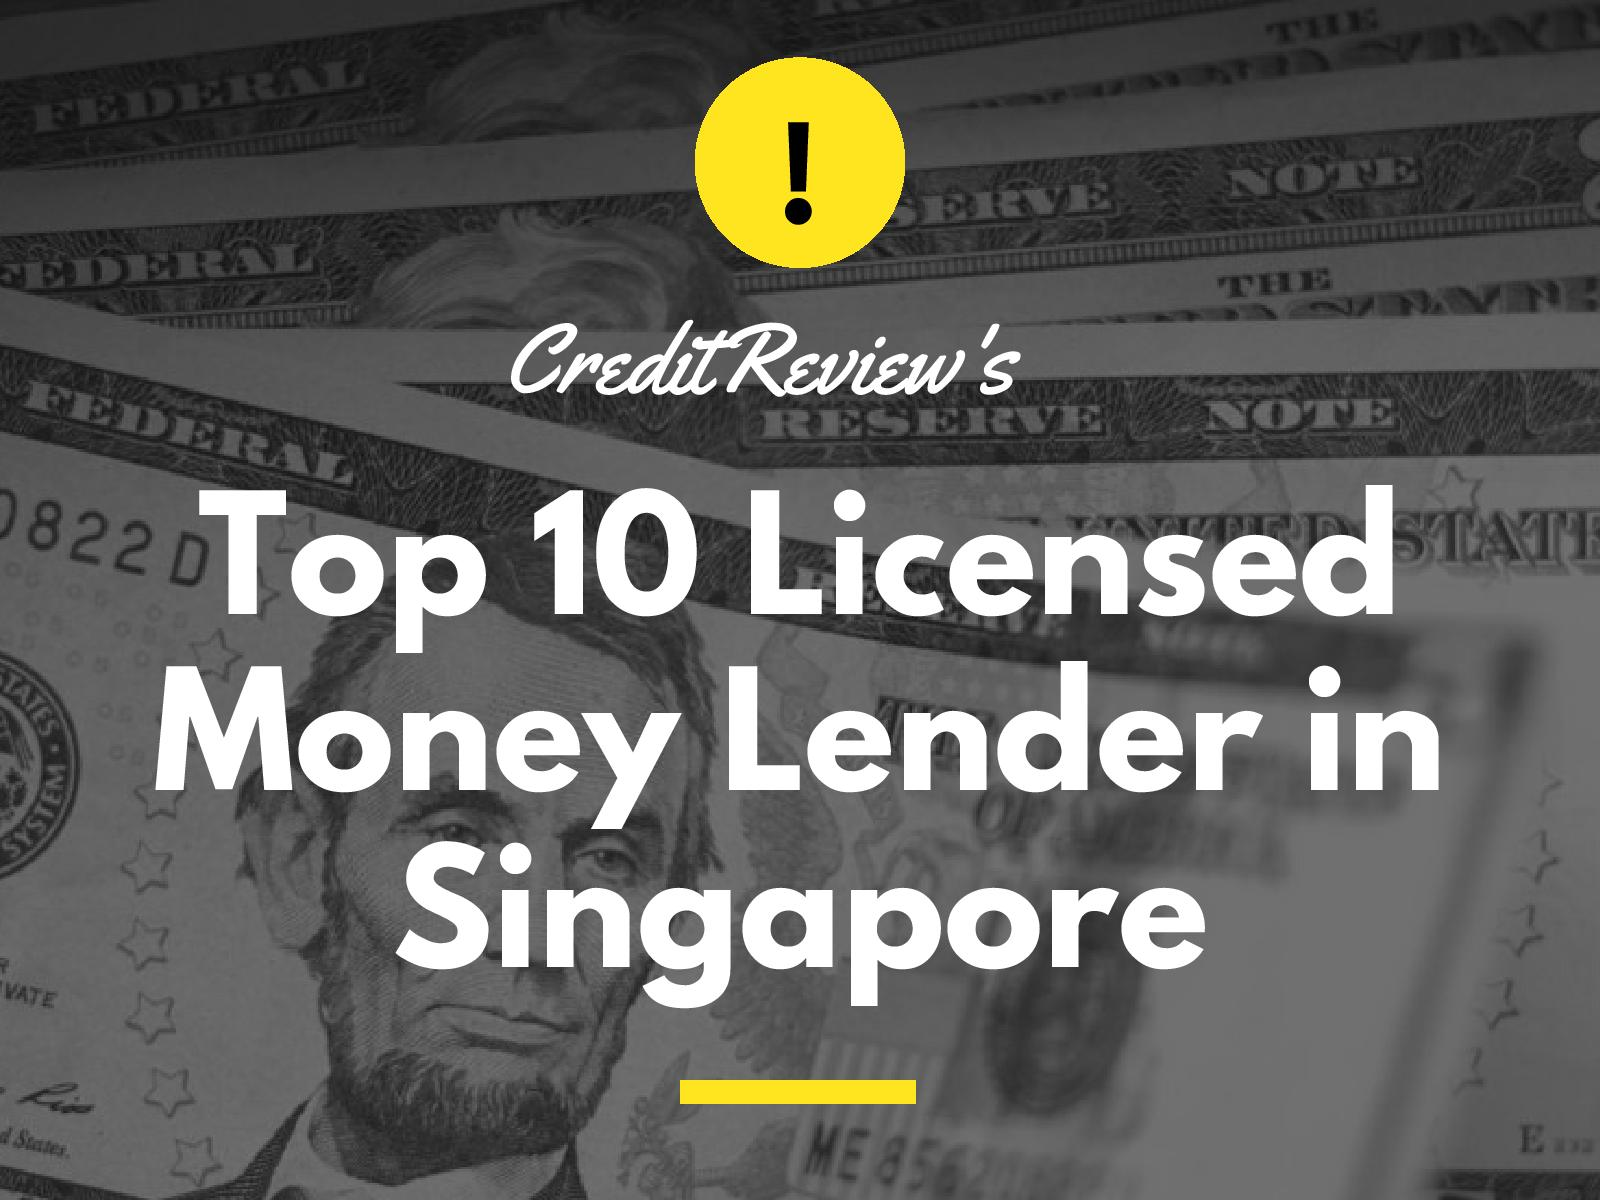 Top 10 Licensed Money Lender Singapore